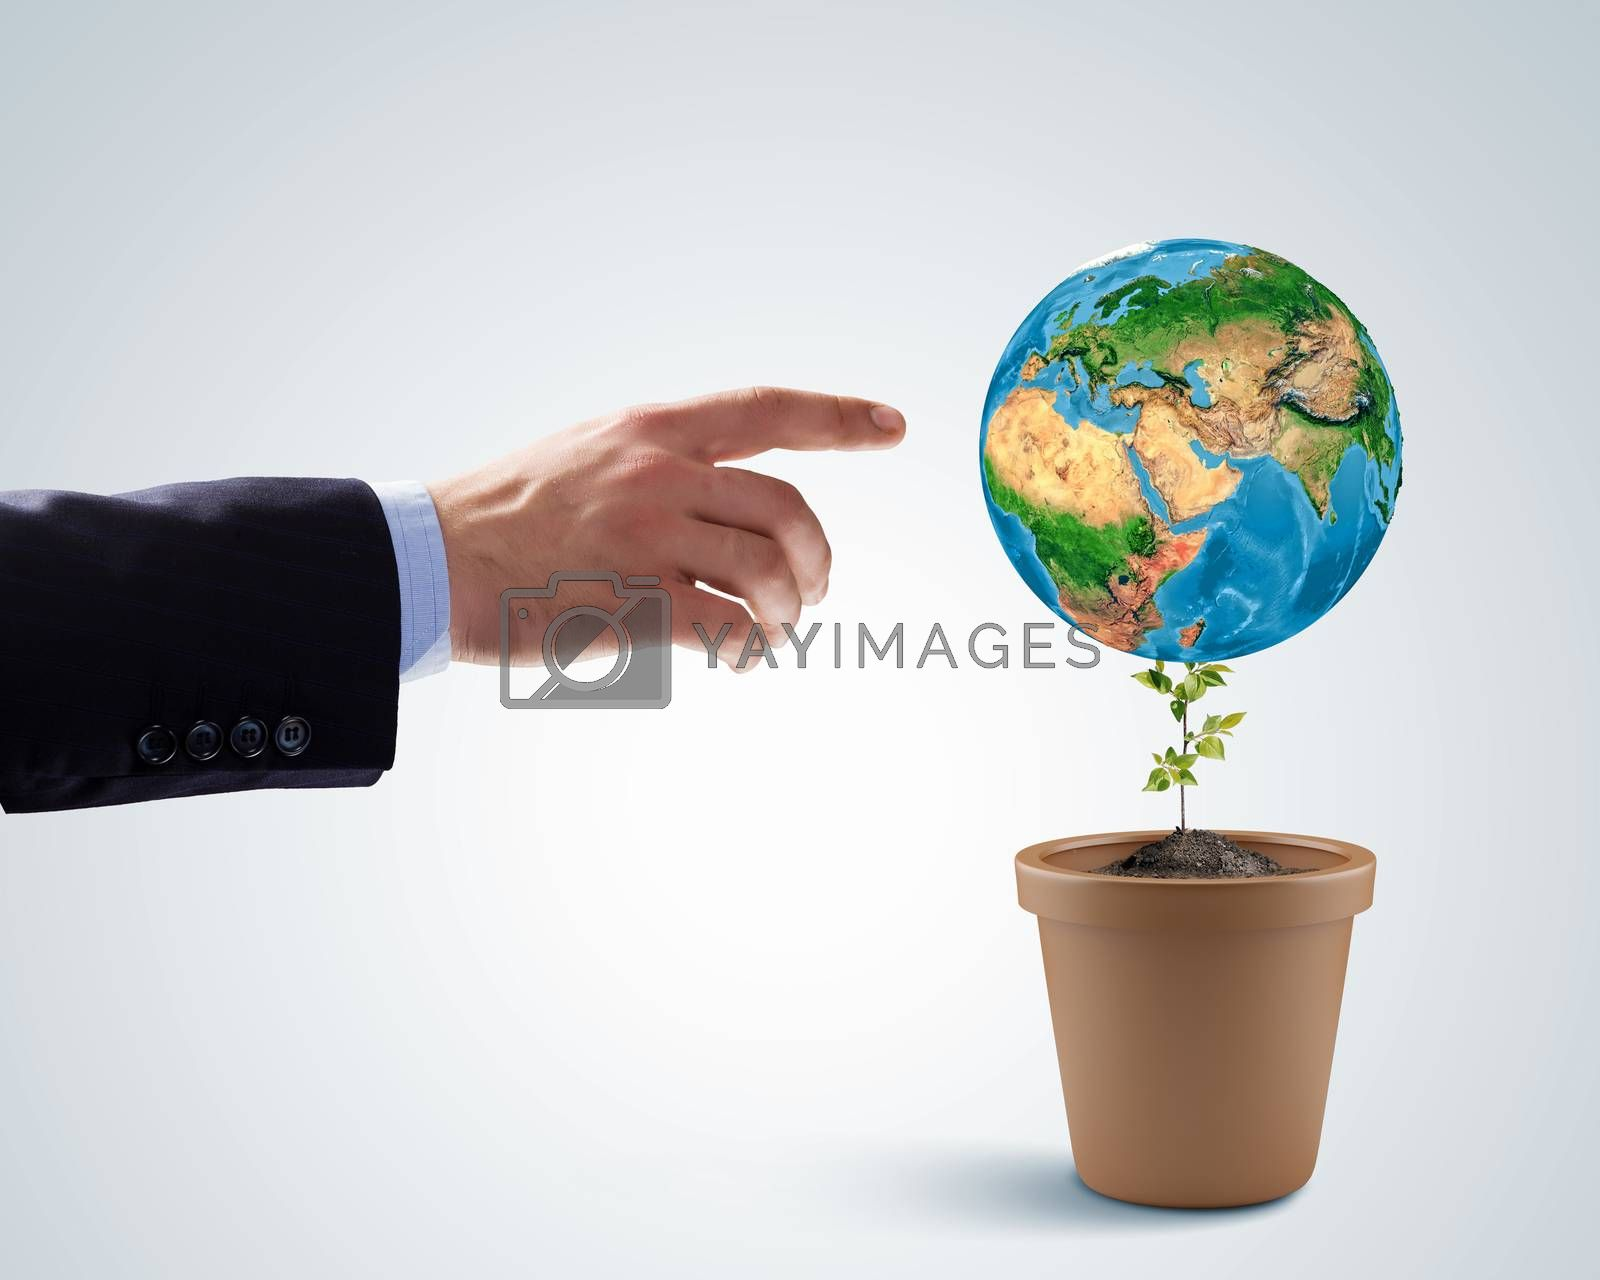 Royalty free image of Save our planet by sergey_nivens